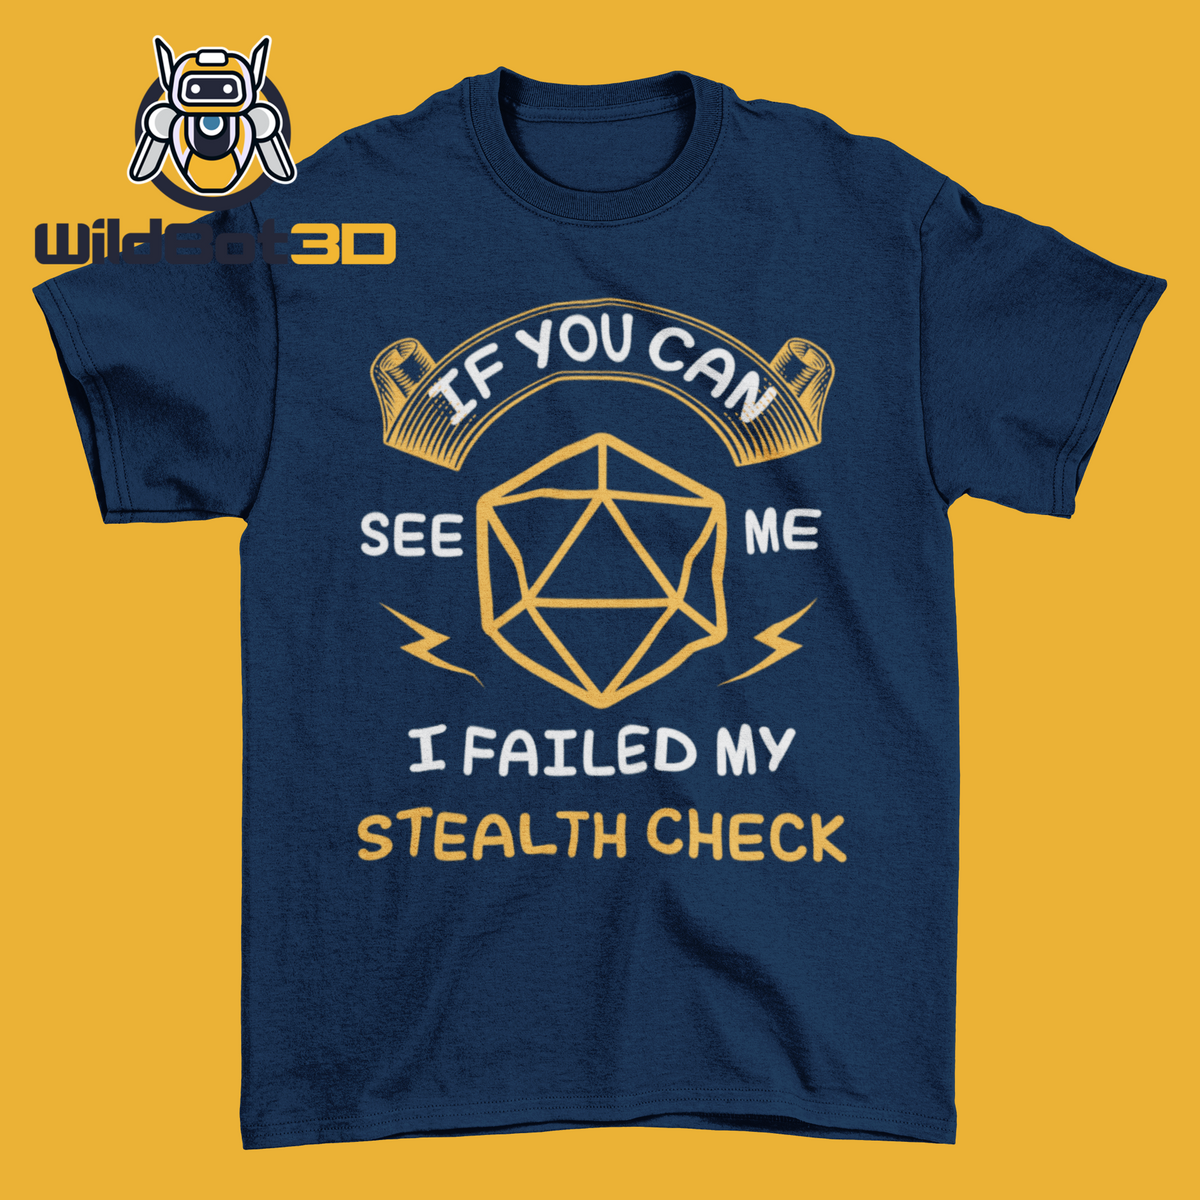 Failed My Stealth Check Tshirt - Wildbot3d